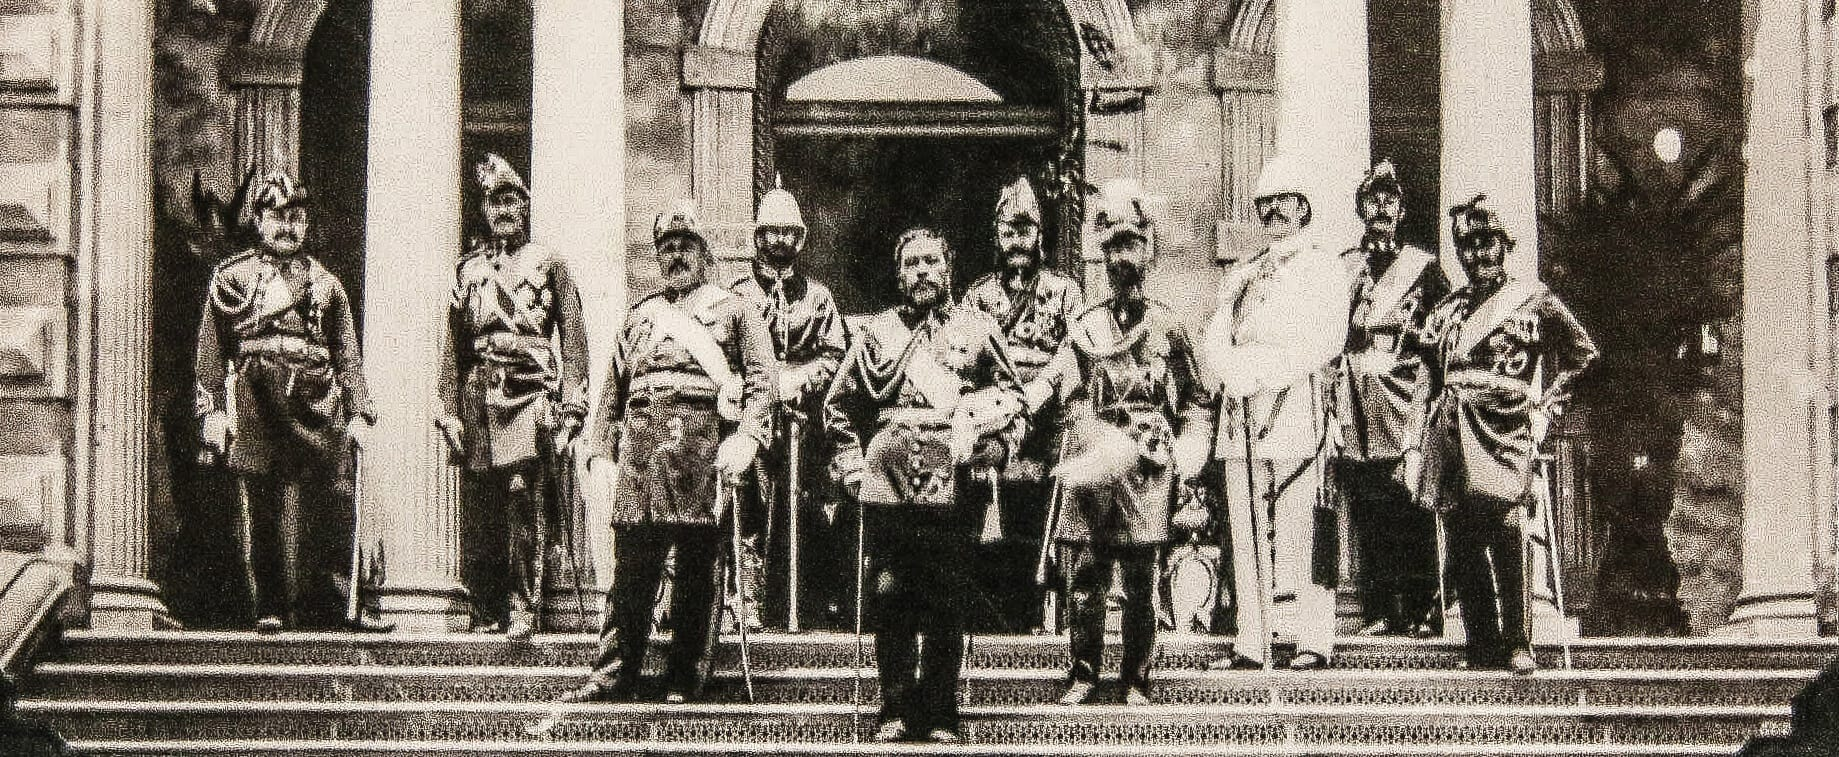 Kalakaua and Military Generals at Iolani Palace